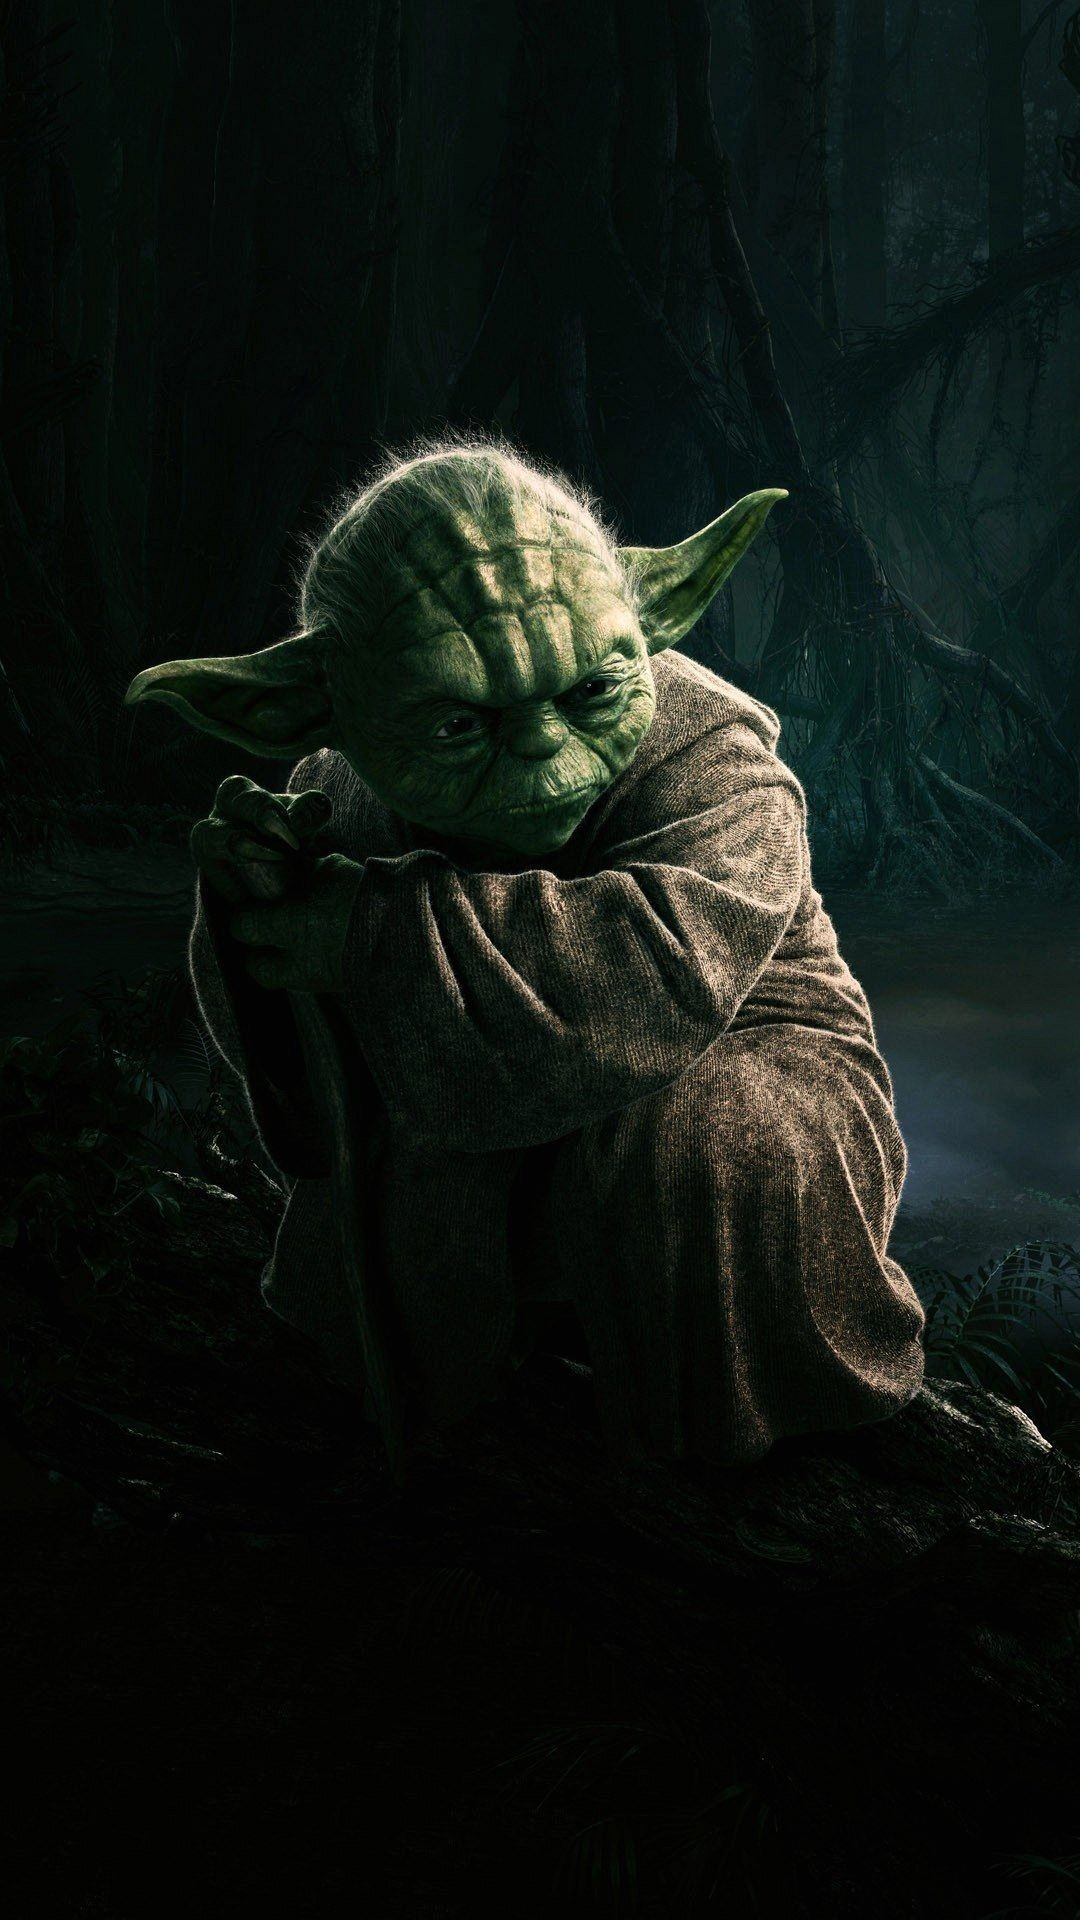 1080x1920 Wallpaper Full Hd 1080 X 1920 Smartphone Yoda - 1080 x 1920 - Full .